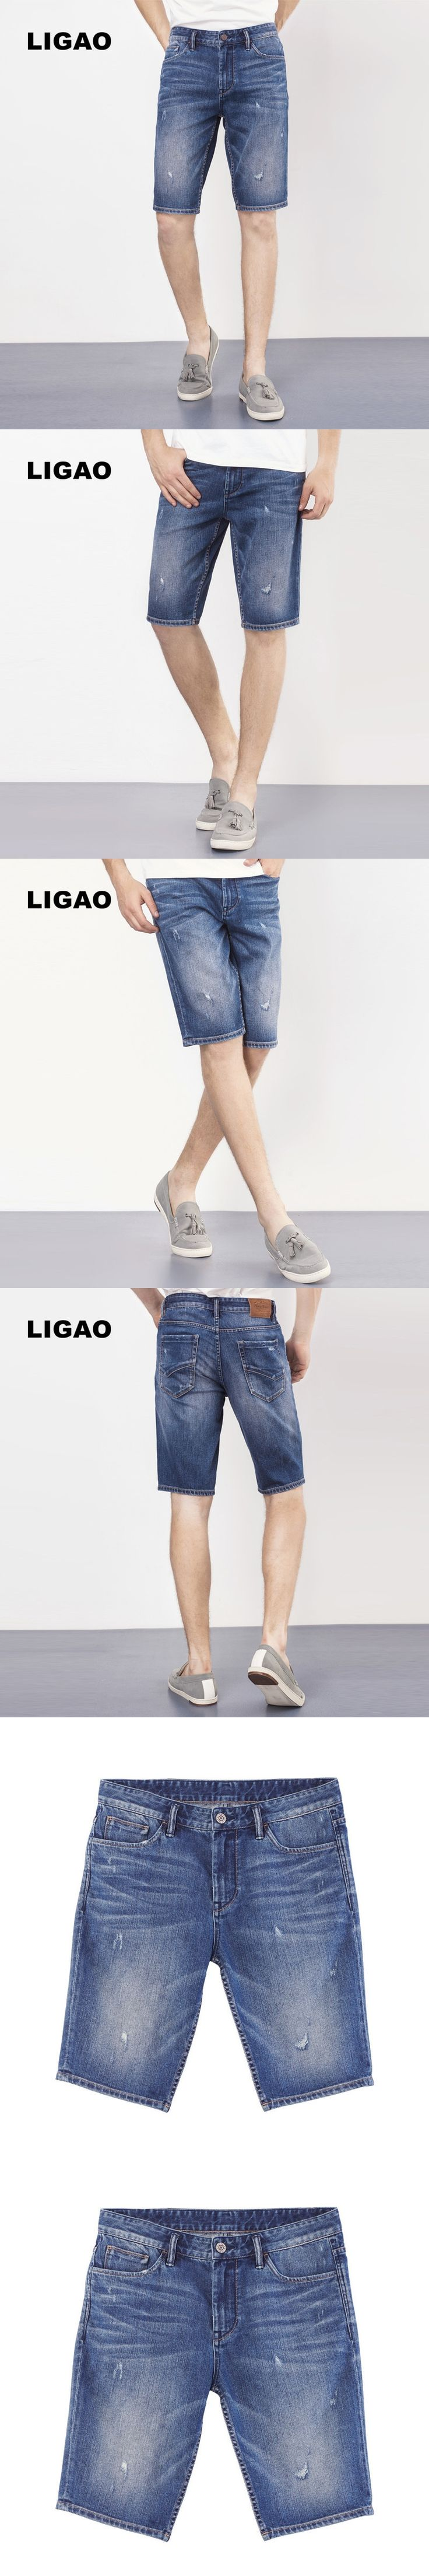 LIGAO 2017 Men's Denim Shorts Men Jeans Knee Length Pant Trousers Scrached Cropped Ripped Hole Summer Shorts Jeans